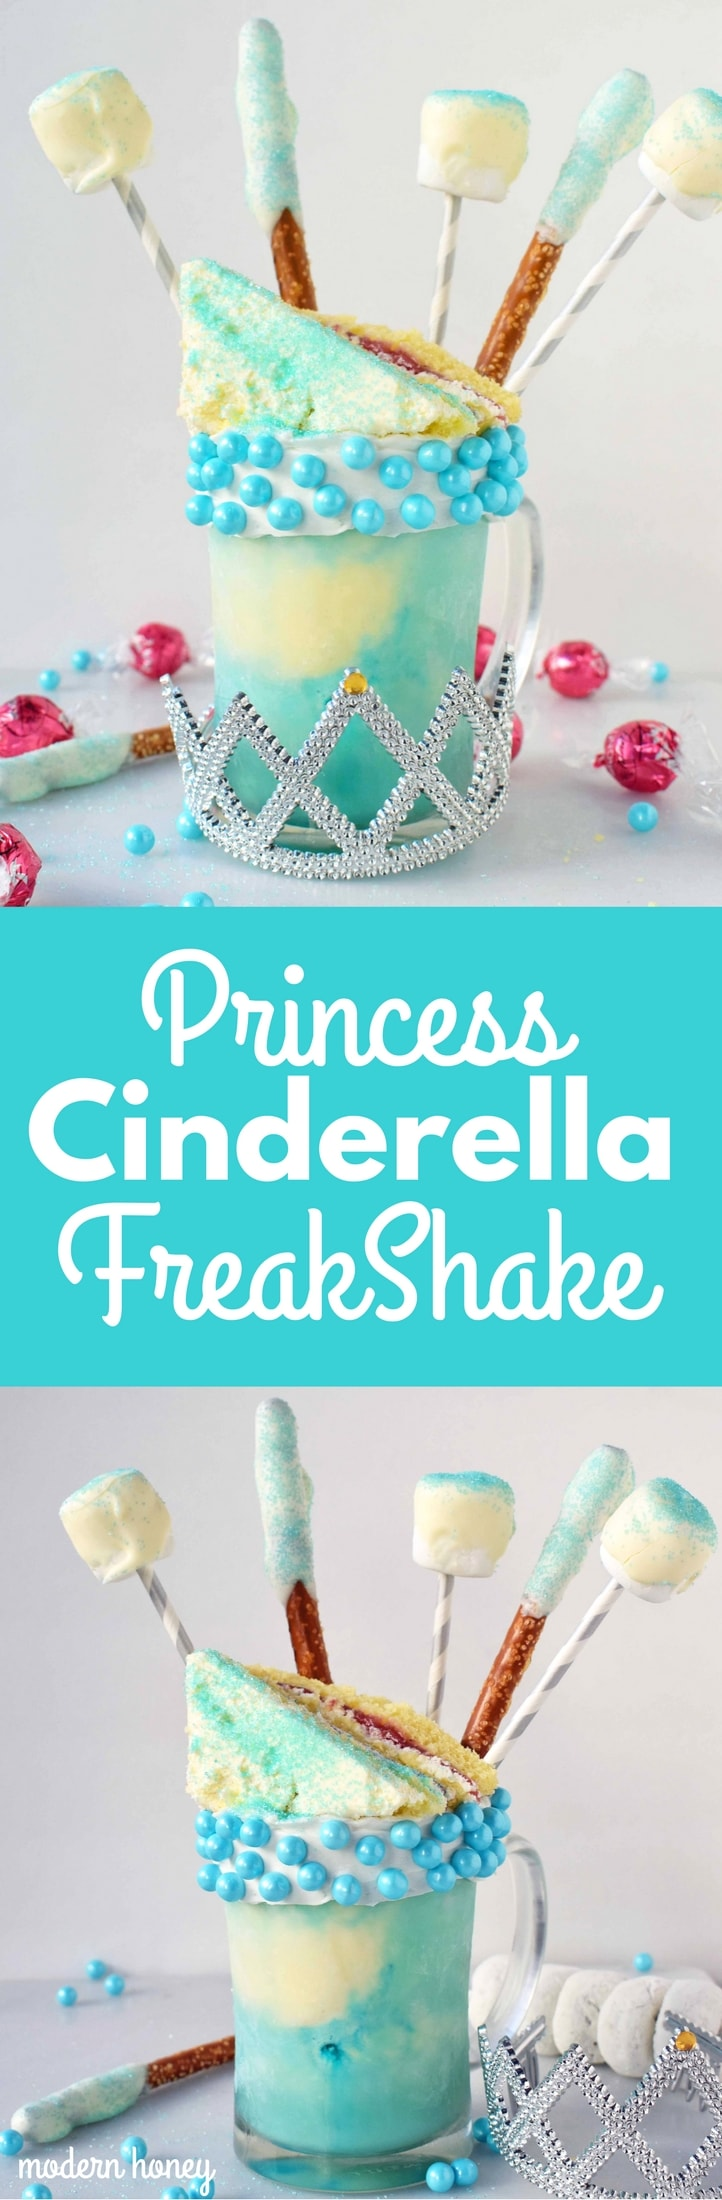 Princess Cinderella FreakShake inspired by the Disney Princess. A vanilla milkshake layered with Cinderella blue tinted ice cream and topped with birthday cake, white chocolate covered pretzels and marshmallows. Perfect for a Princess party or for a Disney lover. www.modernhoney.com